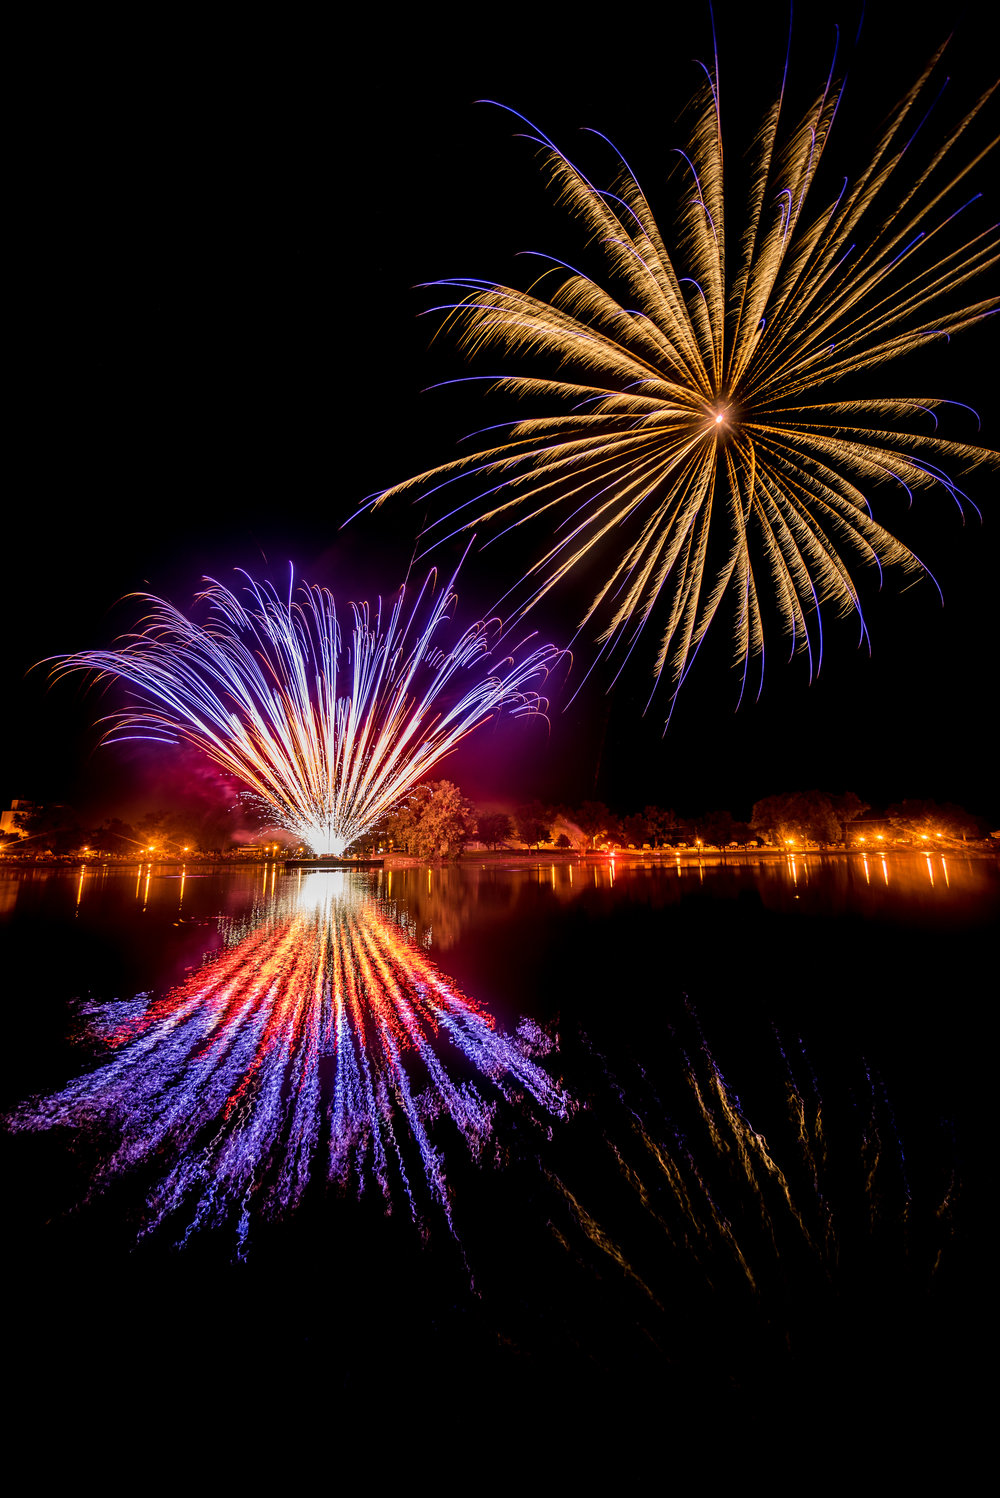 Sterling, KS - 4th of July Fireworks over the lake (2015)  Sony A7r, 10-18mm lens (APS-C lens in full-frame mode) at 13mm, f/5, 5 seconds, ISO 100.